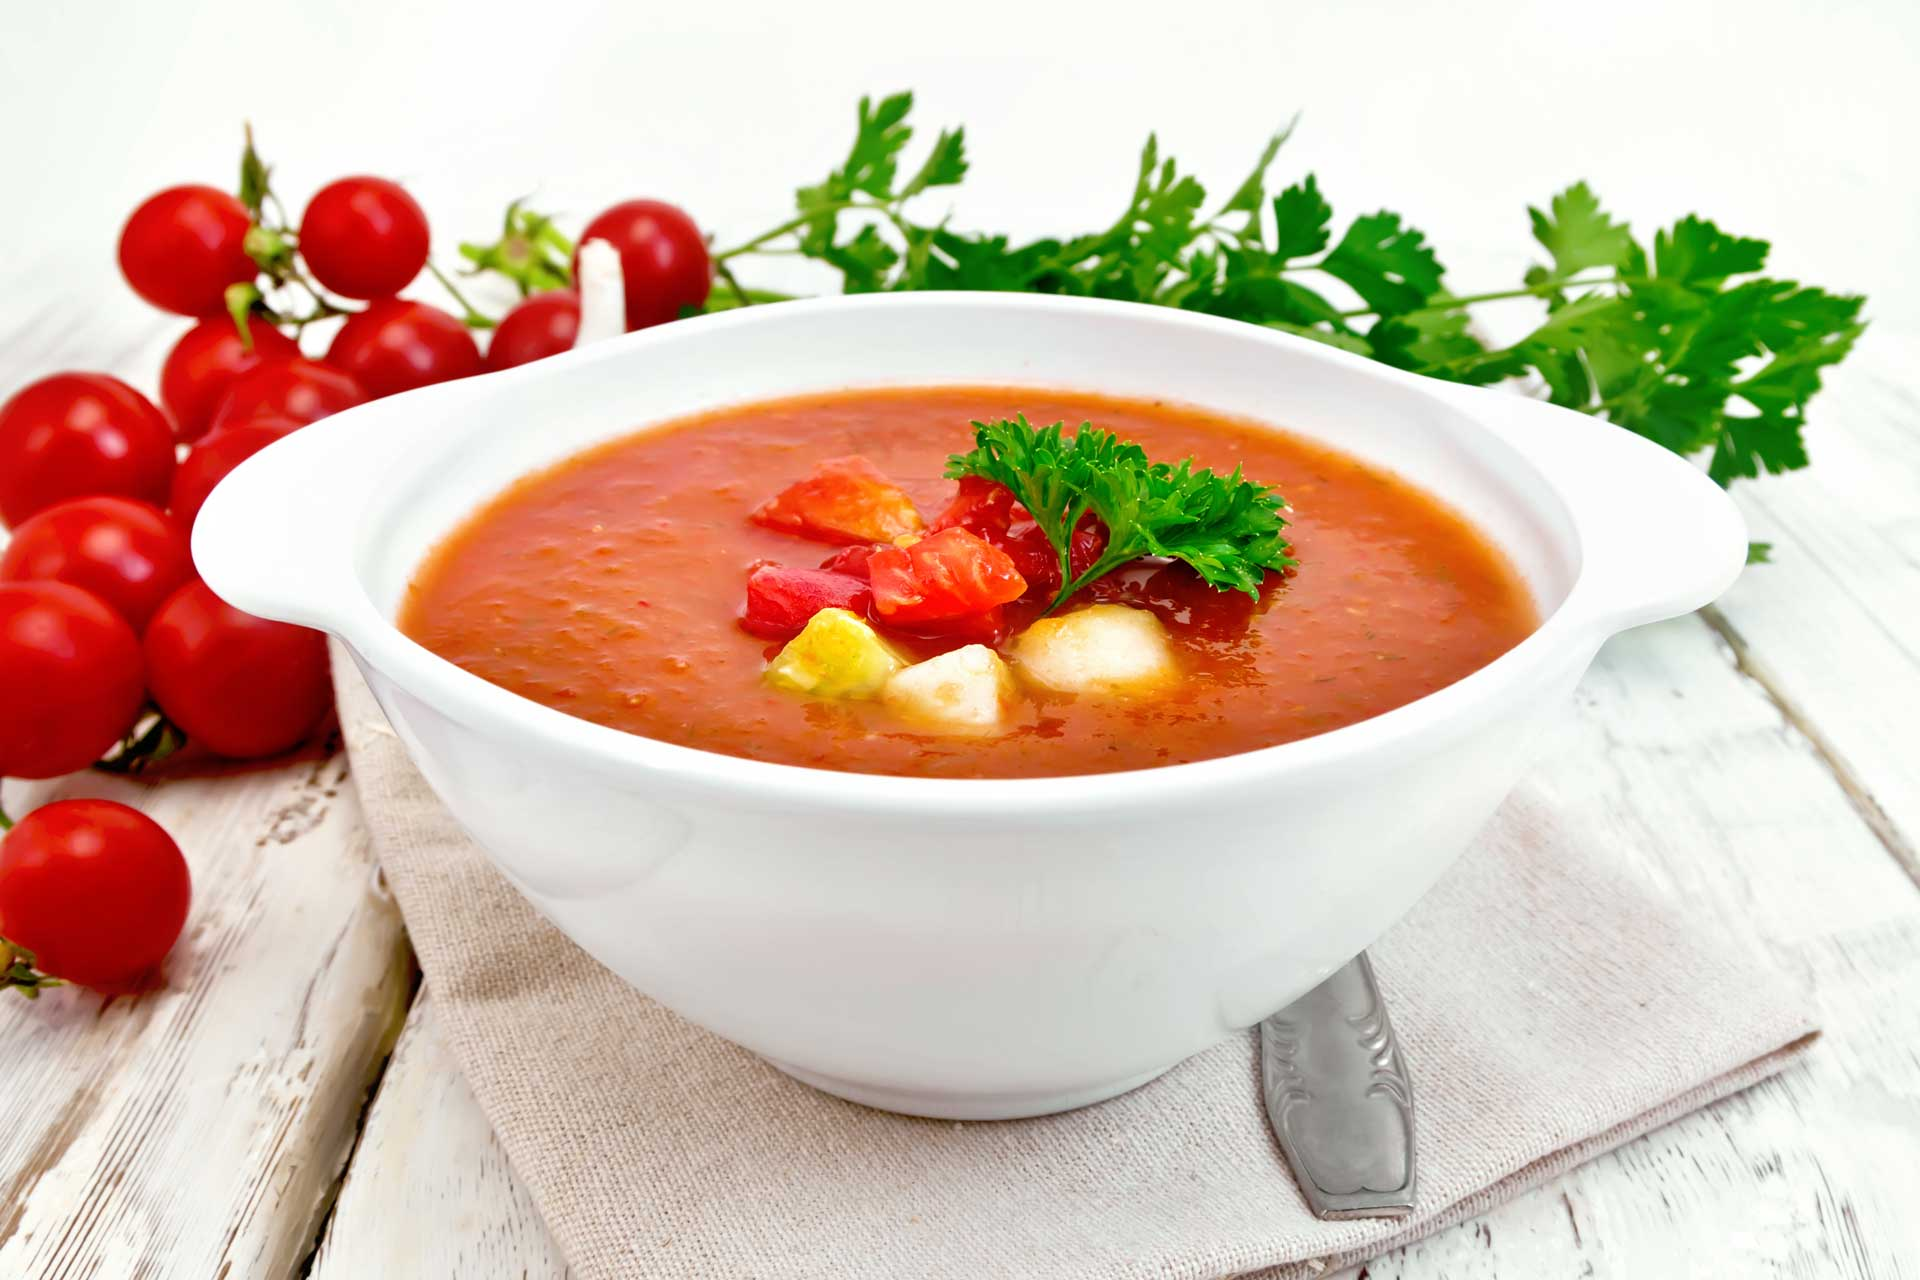 soup-tomato-in-white-bowl-with-vegetables